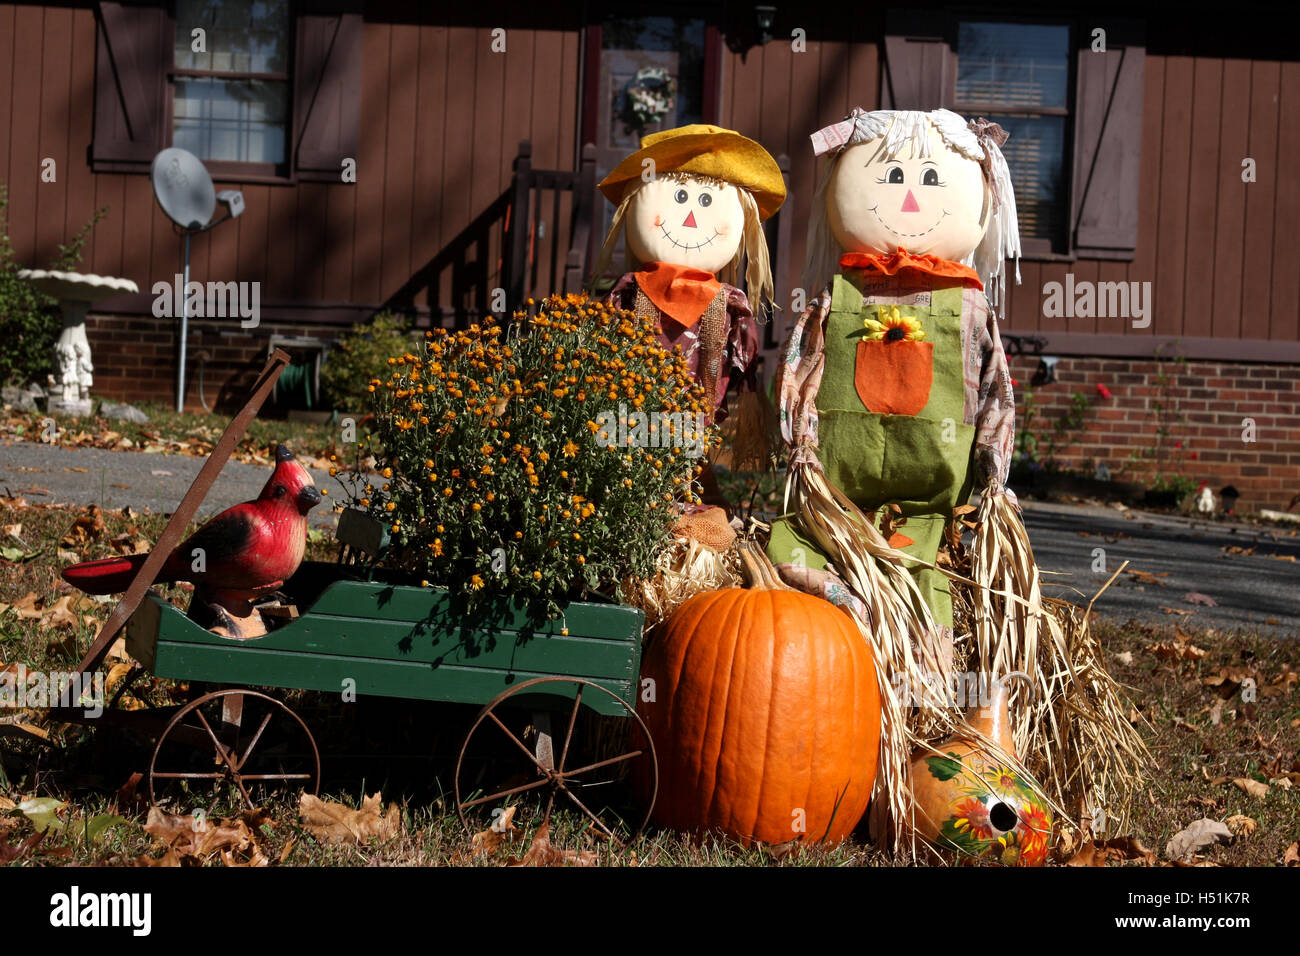 Outdoor Fall Decoration With Scarecrow And Pumpkins Stock Photo